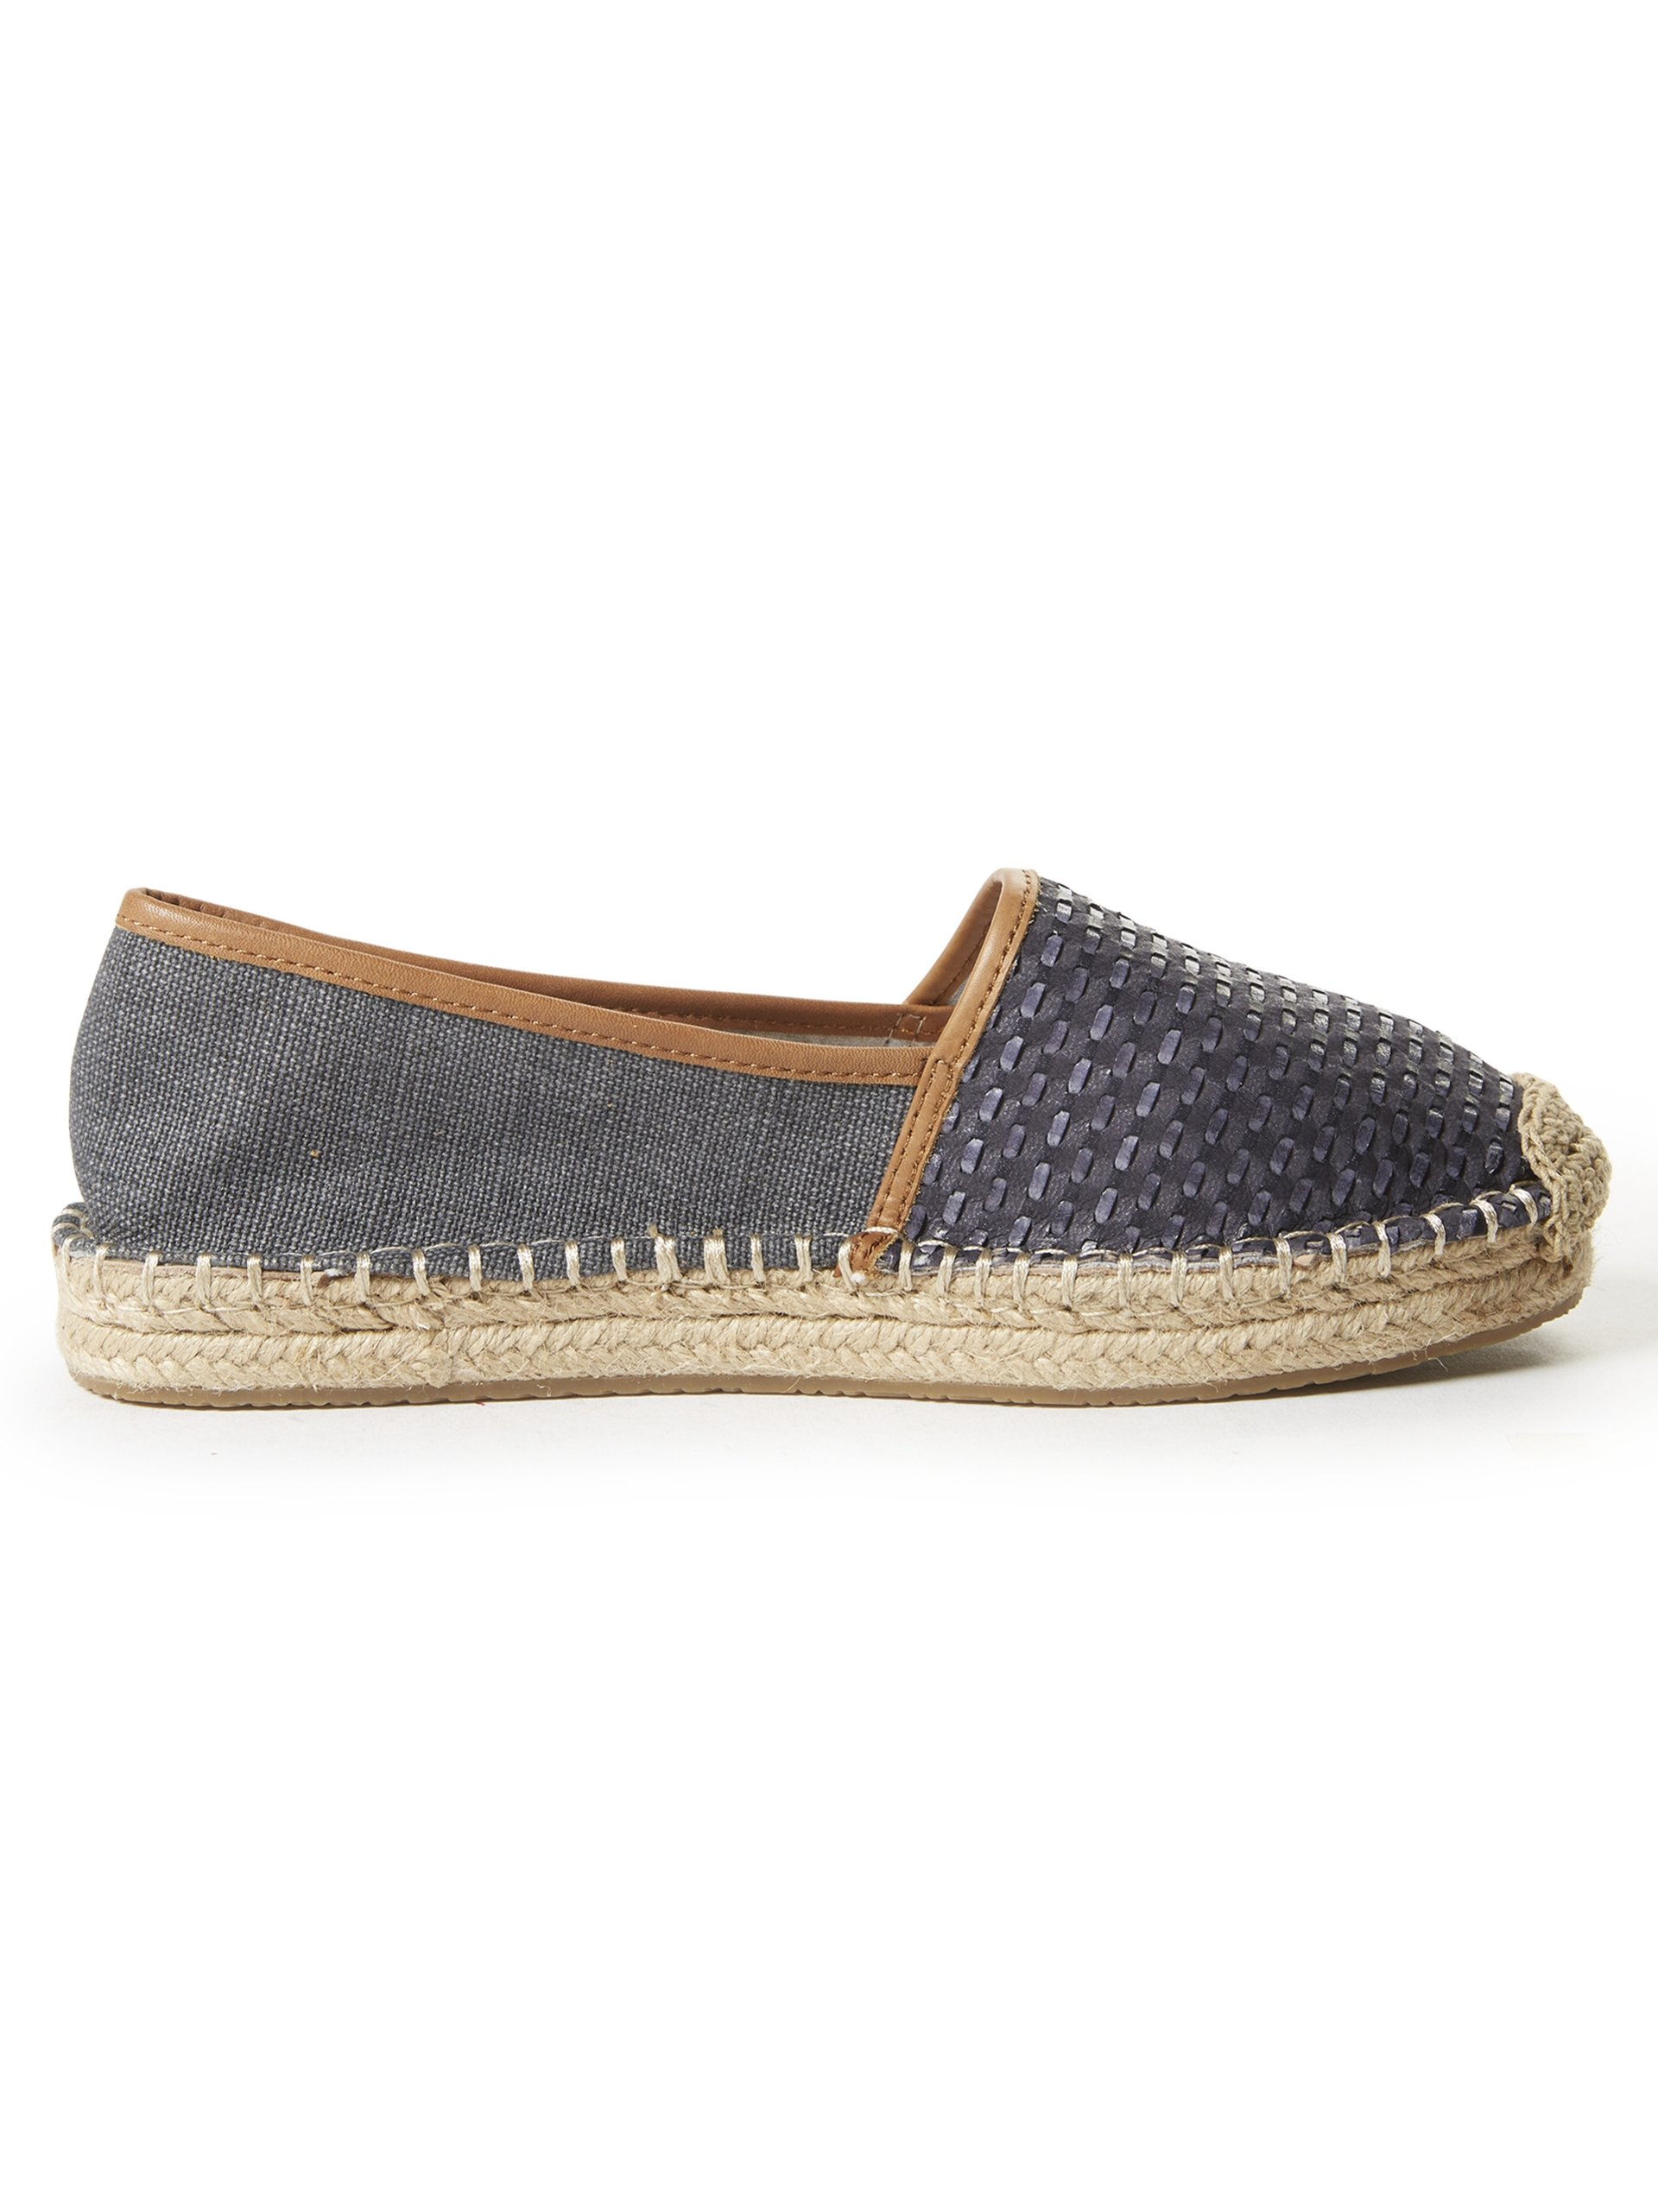 marc o 39 polo damen espadrilles mit leder anteil blau uni online kaufen peek und cloppenburg de. Black Bedroom Furniture Sets. Home Design Ideas